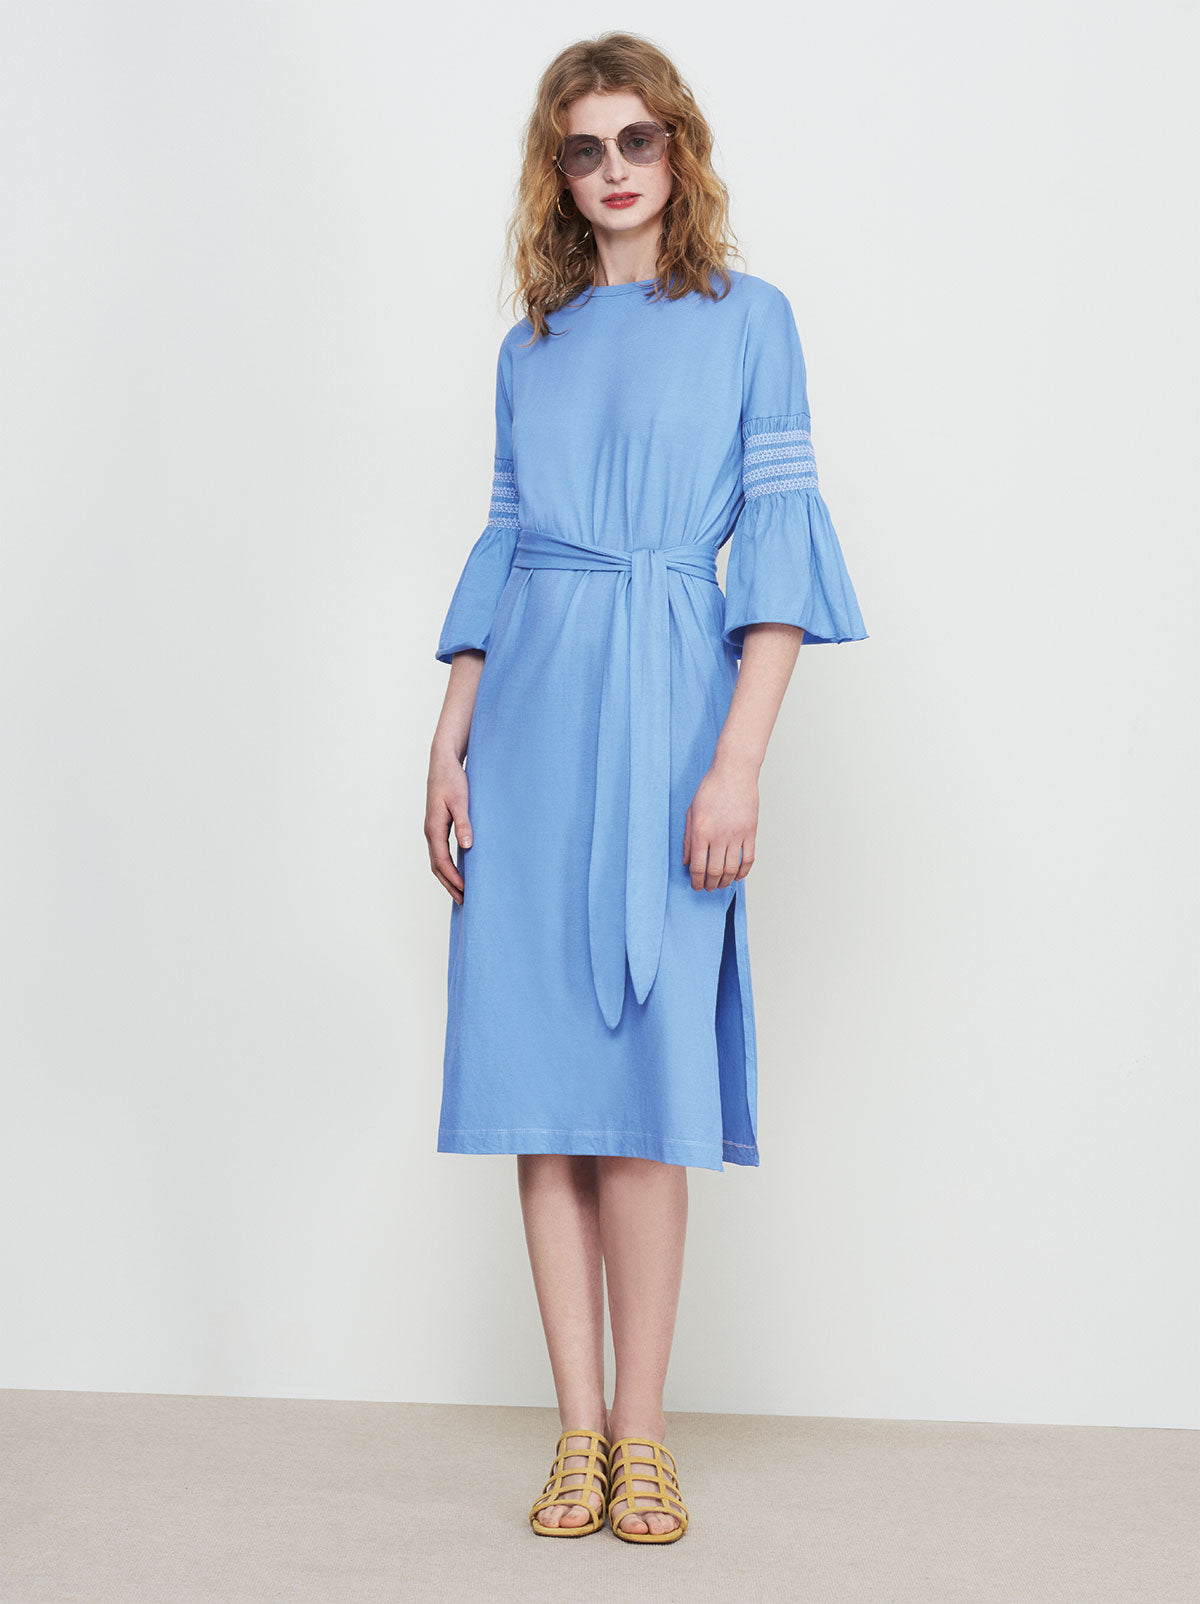 Imogen Blue Smocked Sleeve Dress by KITRI Studio